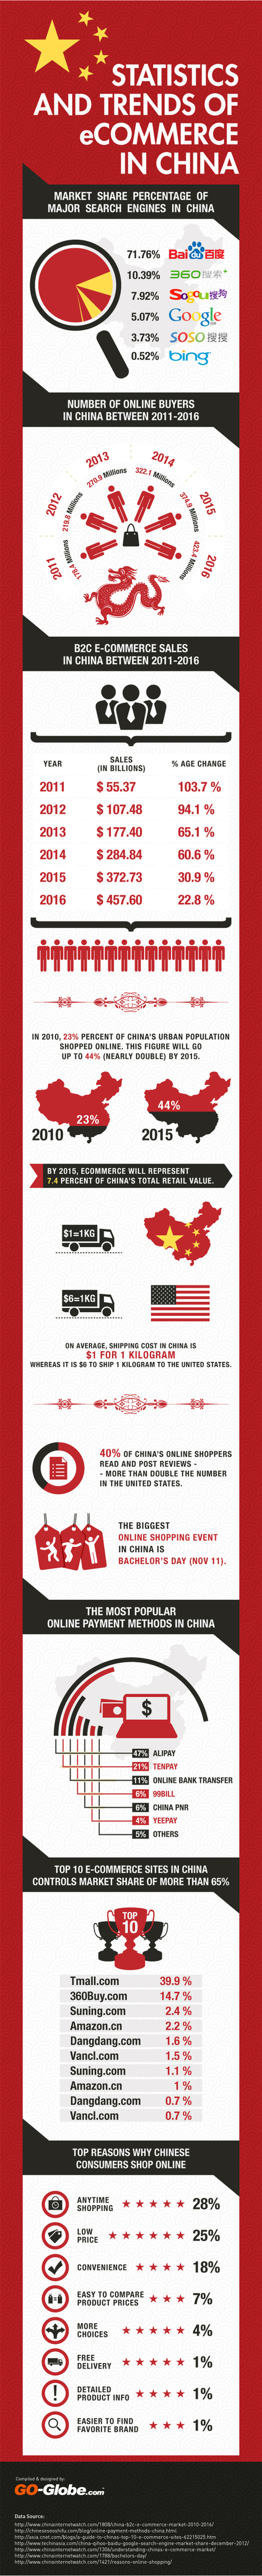 E-commerce In China - Statistics and Trends [Infographic] | Latest eCommerce News | Scoop.it